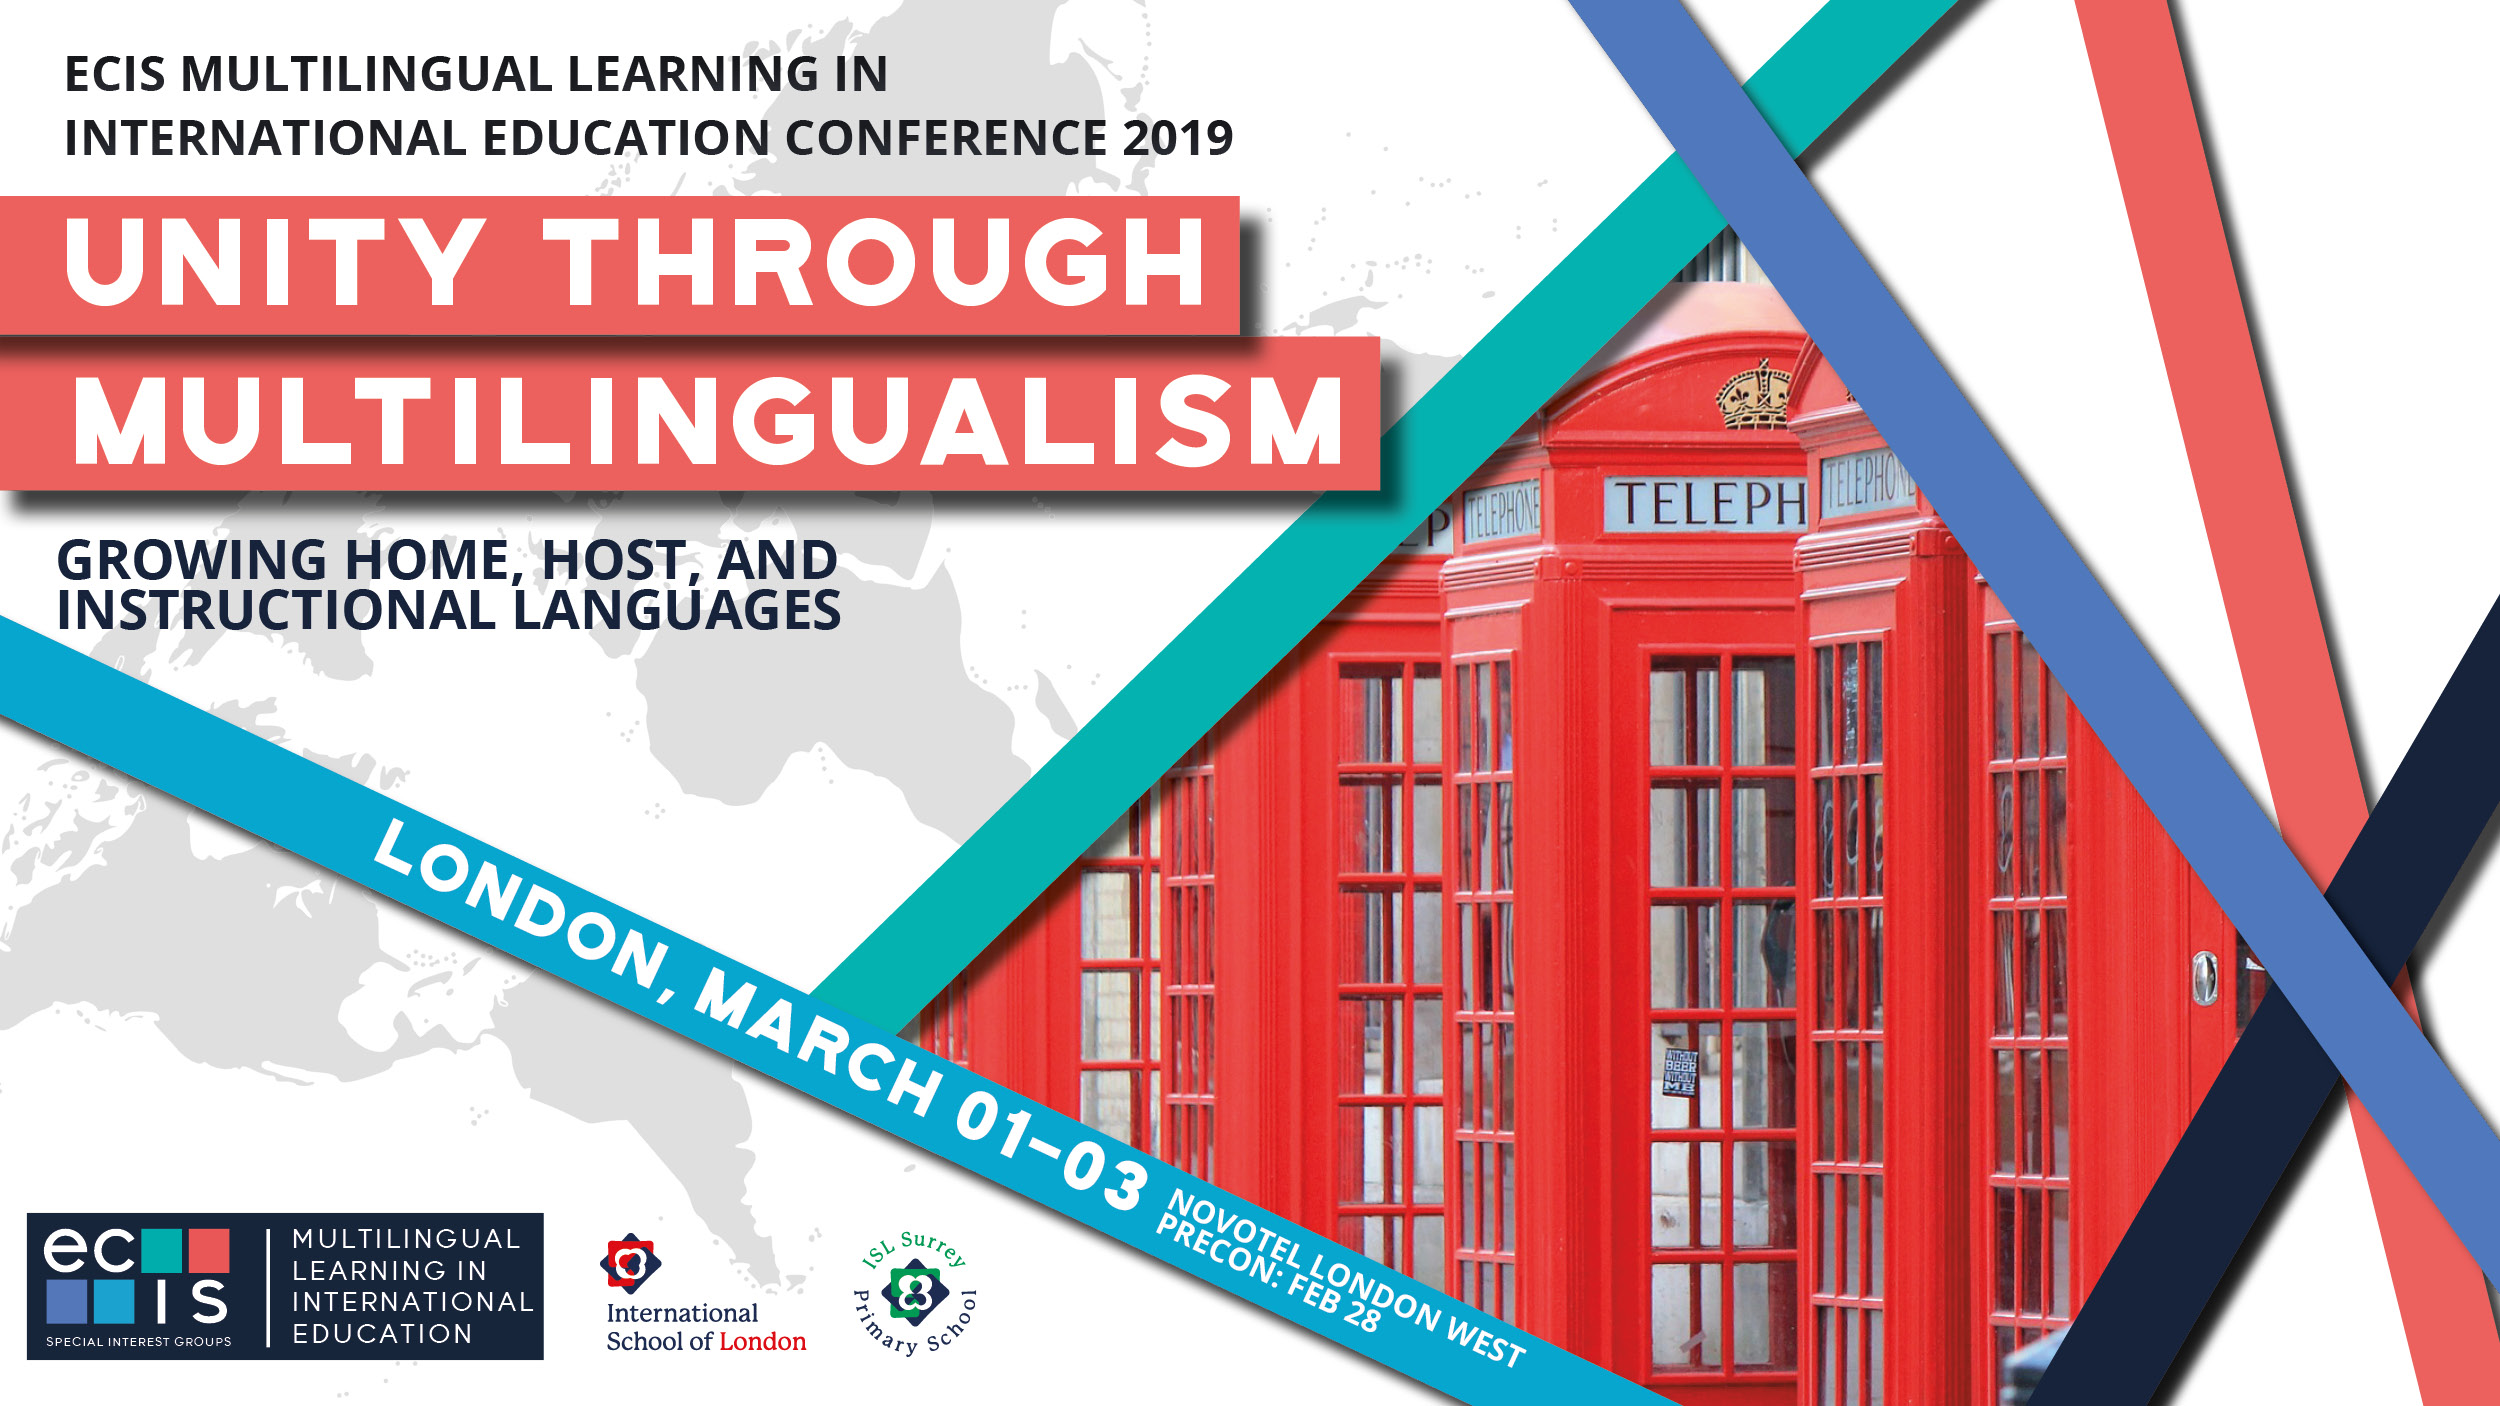 ECIS MLIE Conference 2019 - London